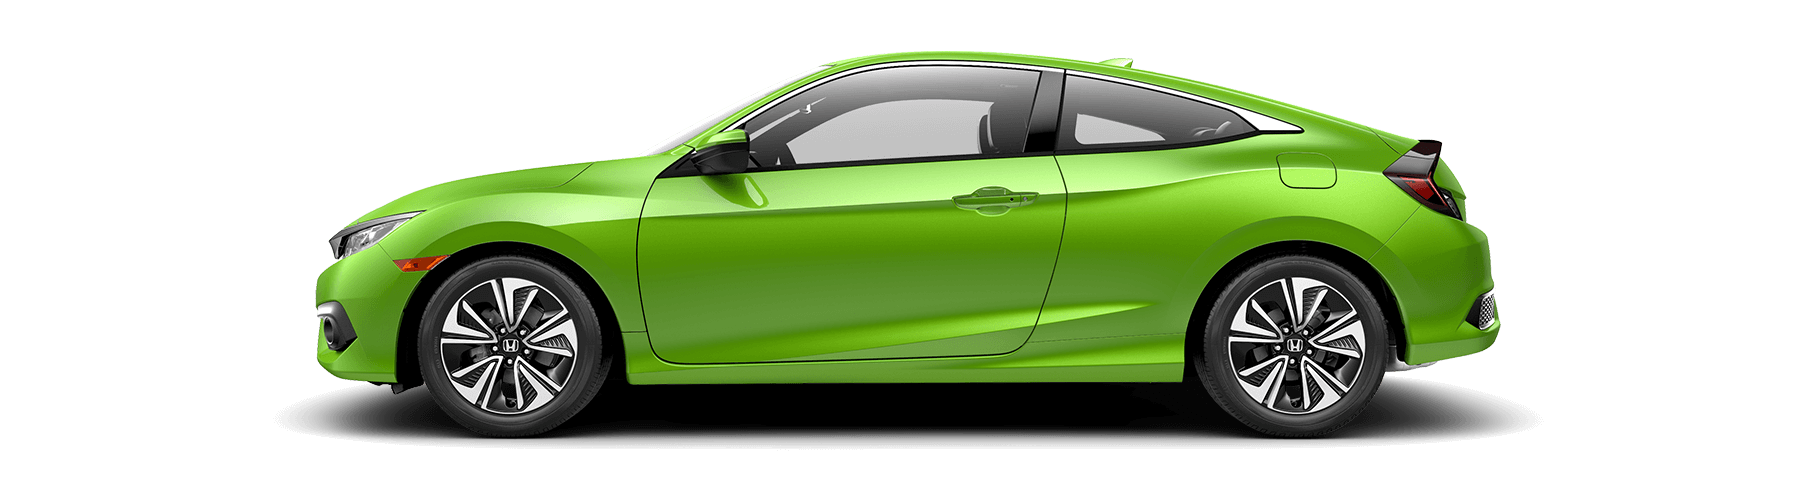 2018 Honda Civic Coupe Side Profile